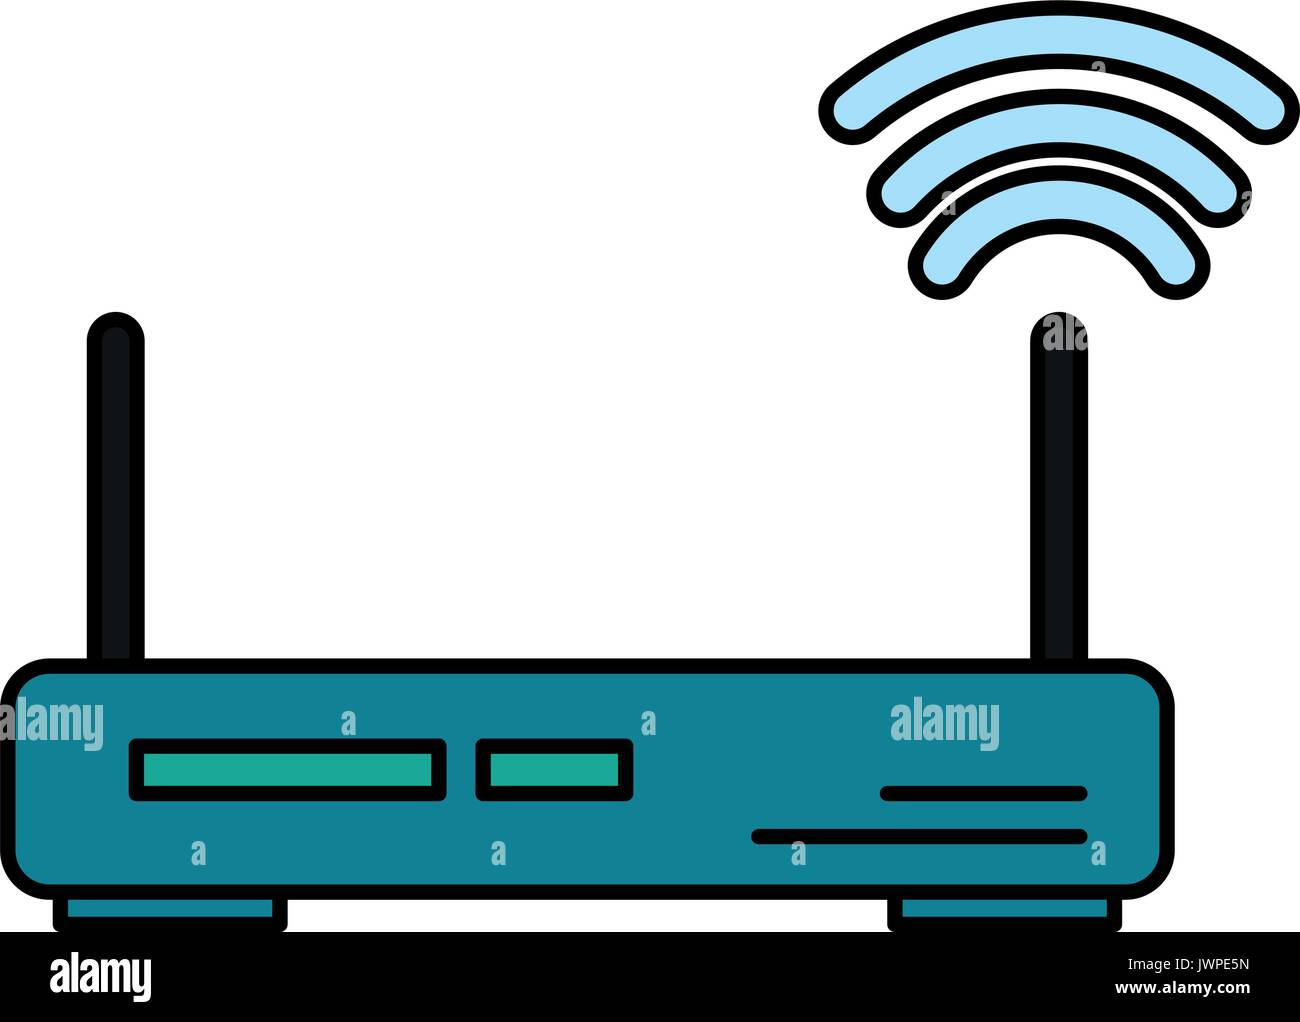 Wifi Router Icon Stock Photos Wifi Router Icon Stock Images Alamy